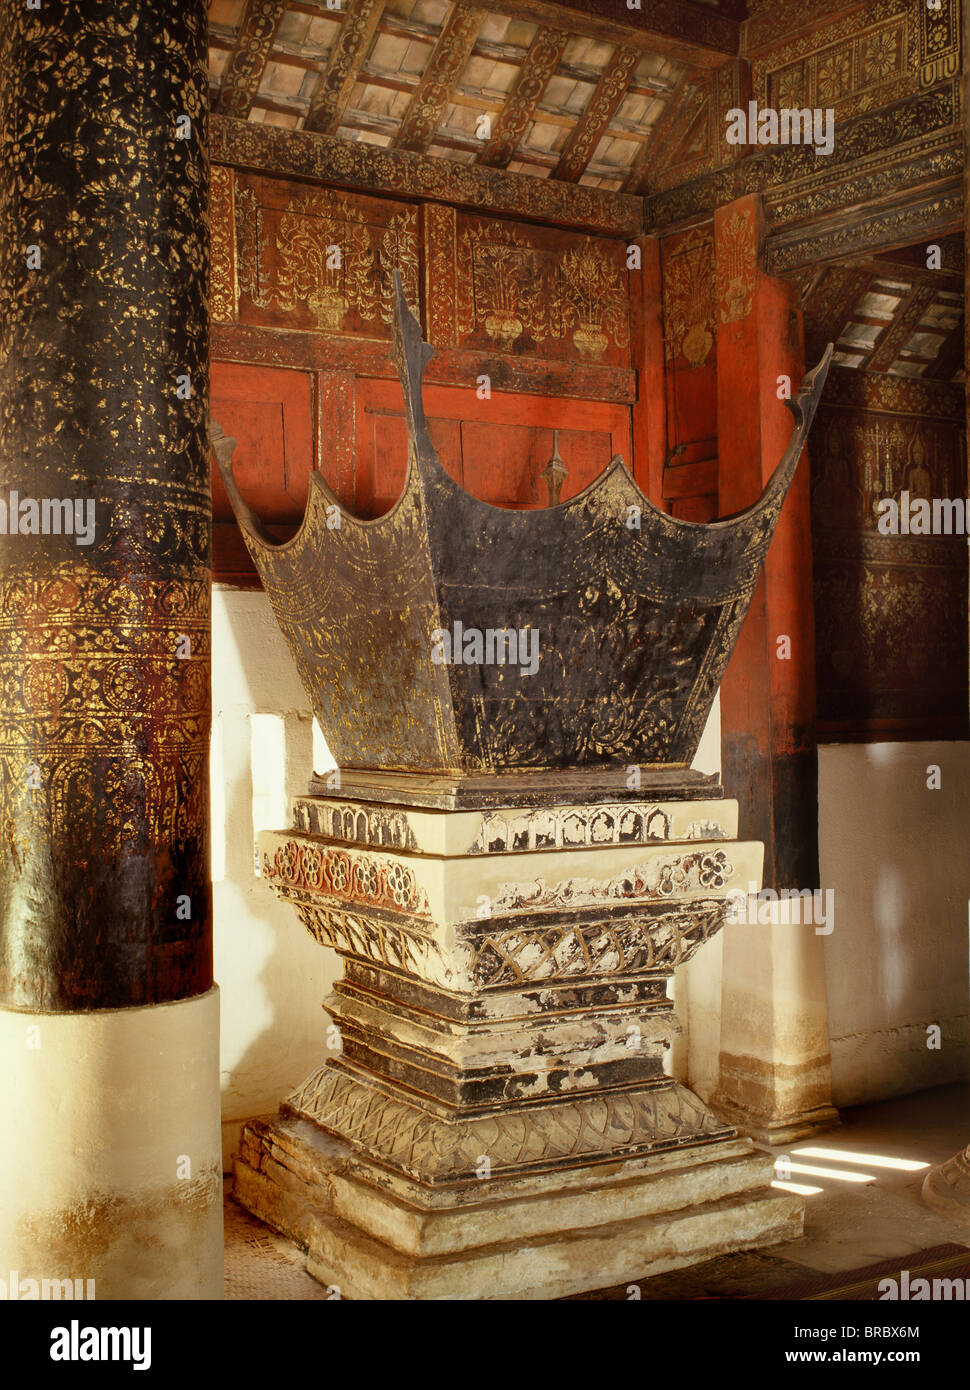 Preaching chair, Wat Pong Yang Kok, a classic example of Lanna (Northern Thai) craftmanship and architecture  Lampang, - Stock Image